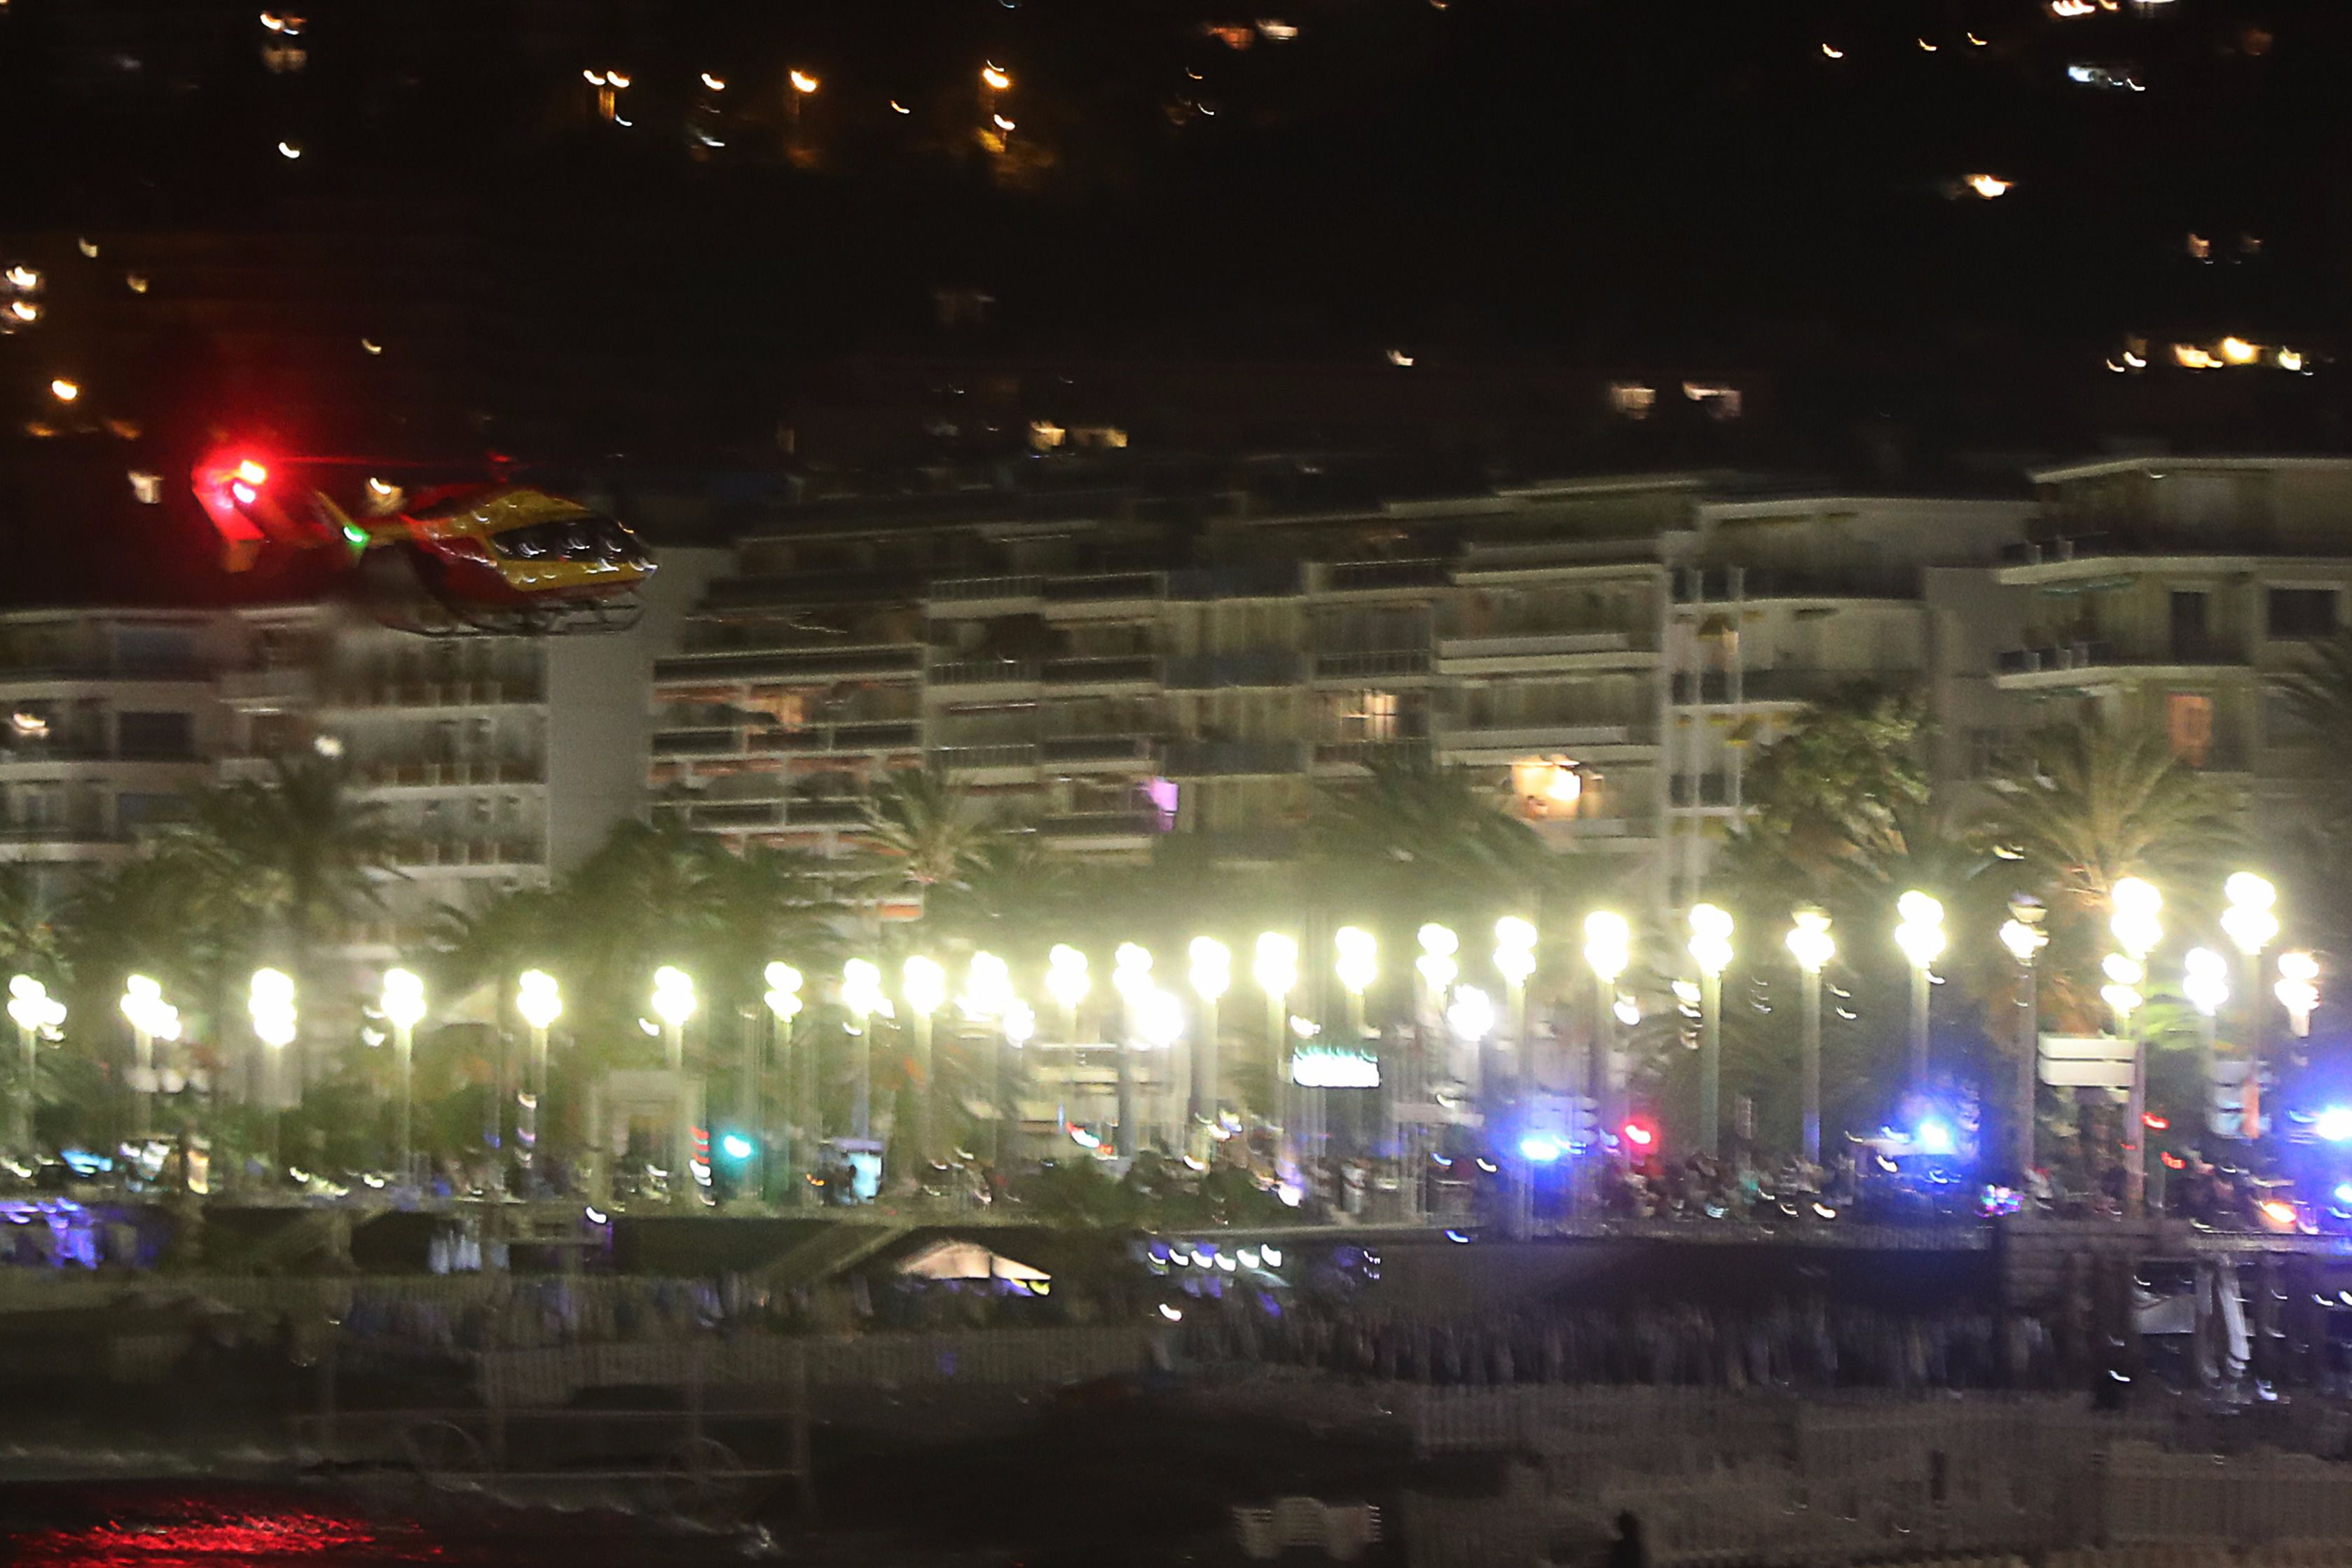 Dozens dead after truck drives into crowd in Nice, France, mayor says